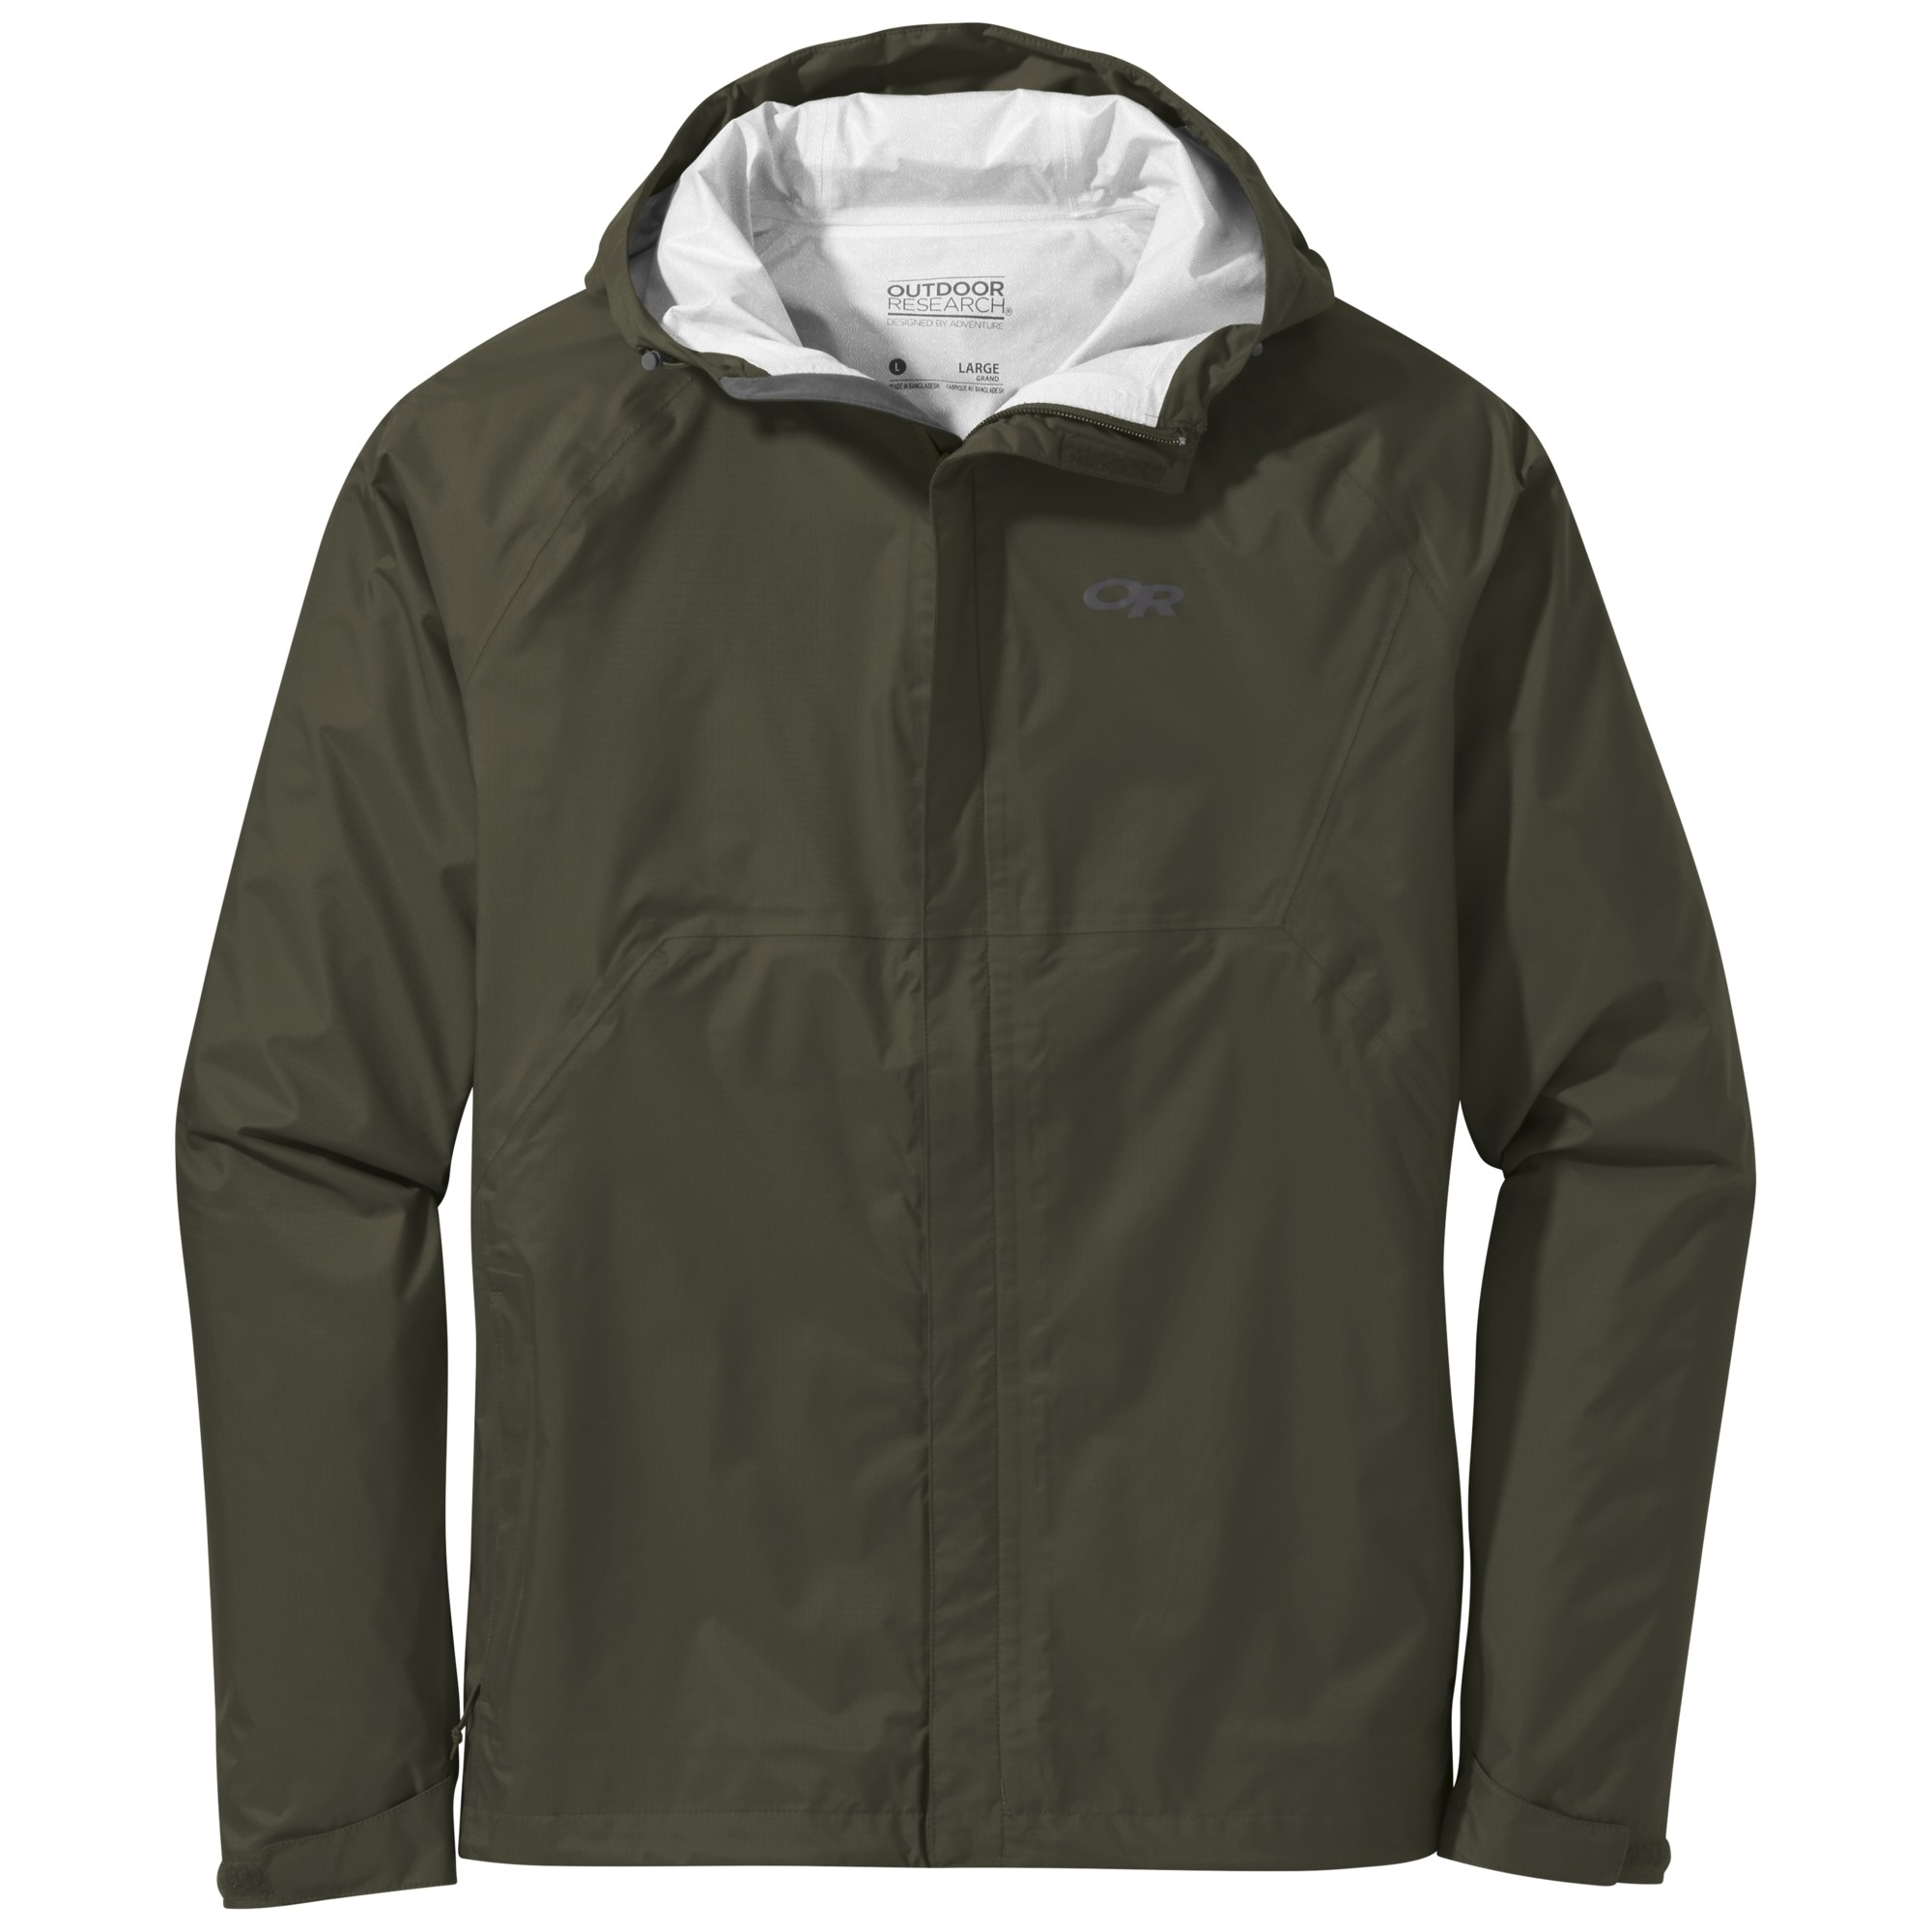 Outdoor Research Outdoor Research Apollo Jacket Mens